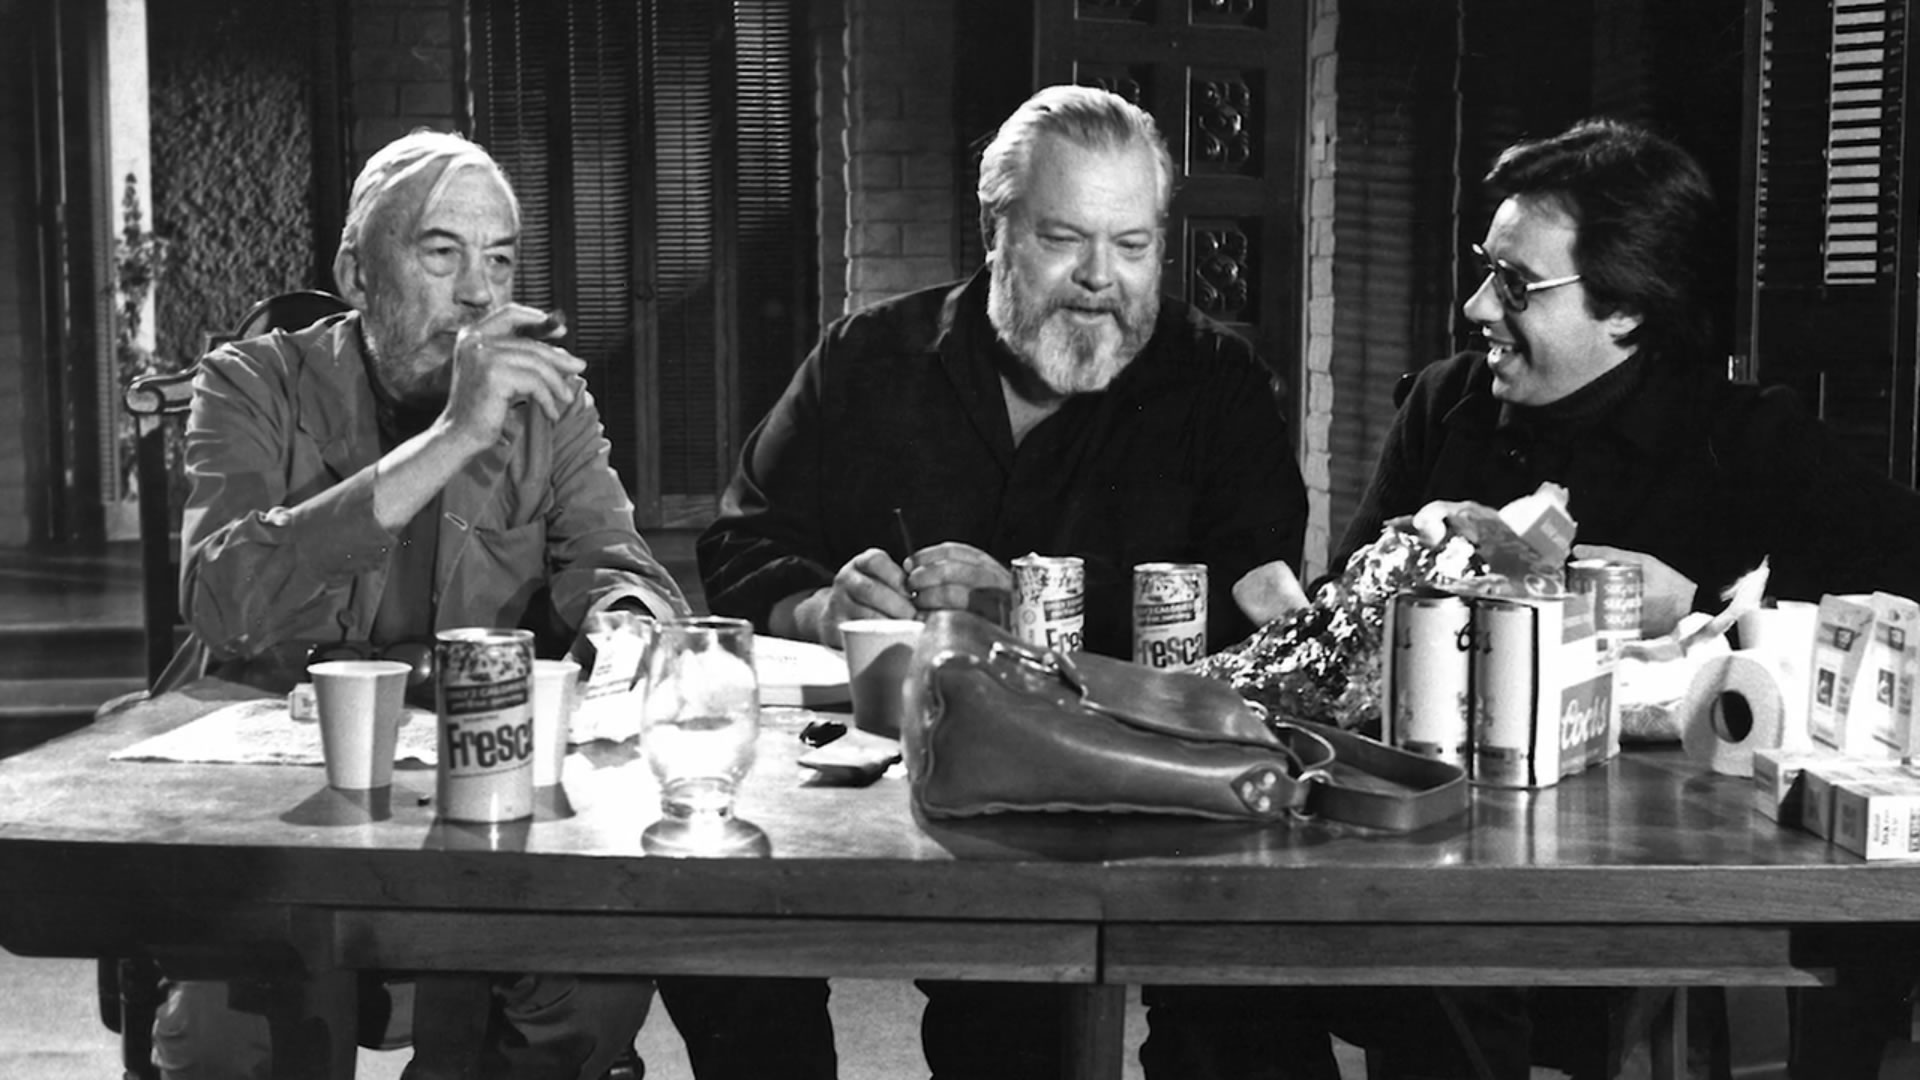 From left to right: John Huston, Orson Welles, Peter Bogdanovich